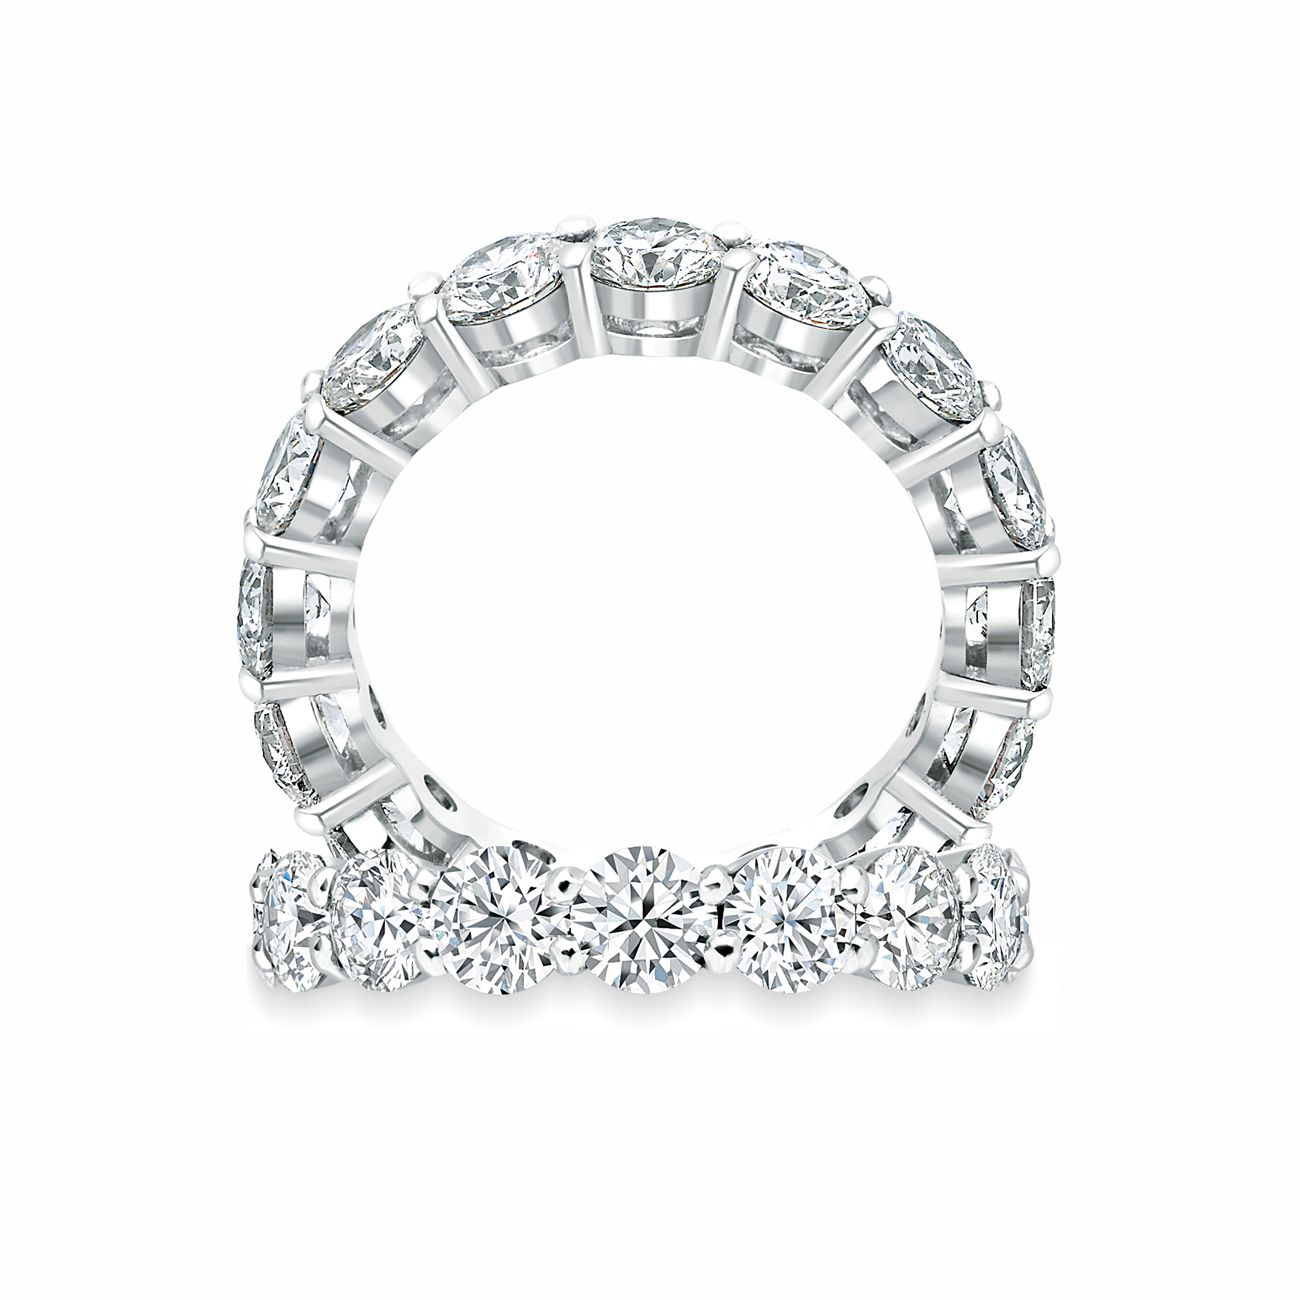 While the more unusual cuts of diamonds have been gathering momentum - Paul Bram Full Circle Ring Magnificent Brilliant Cut Celebration Ring With Diamonds Claw Set